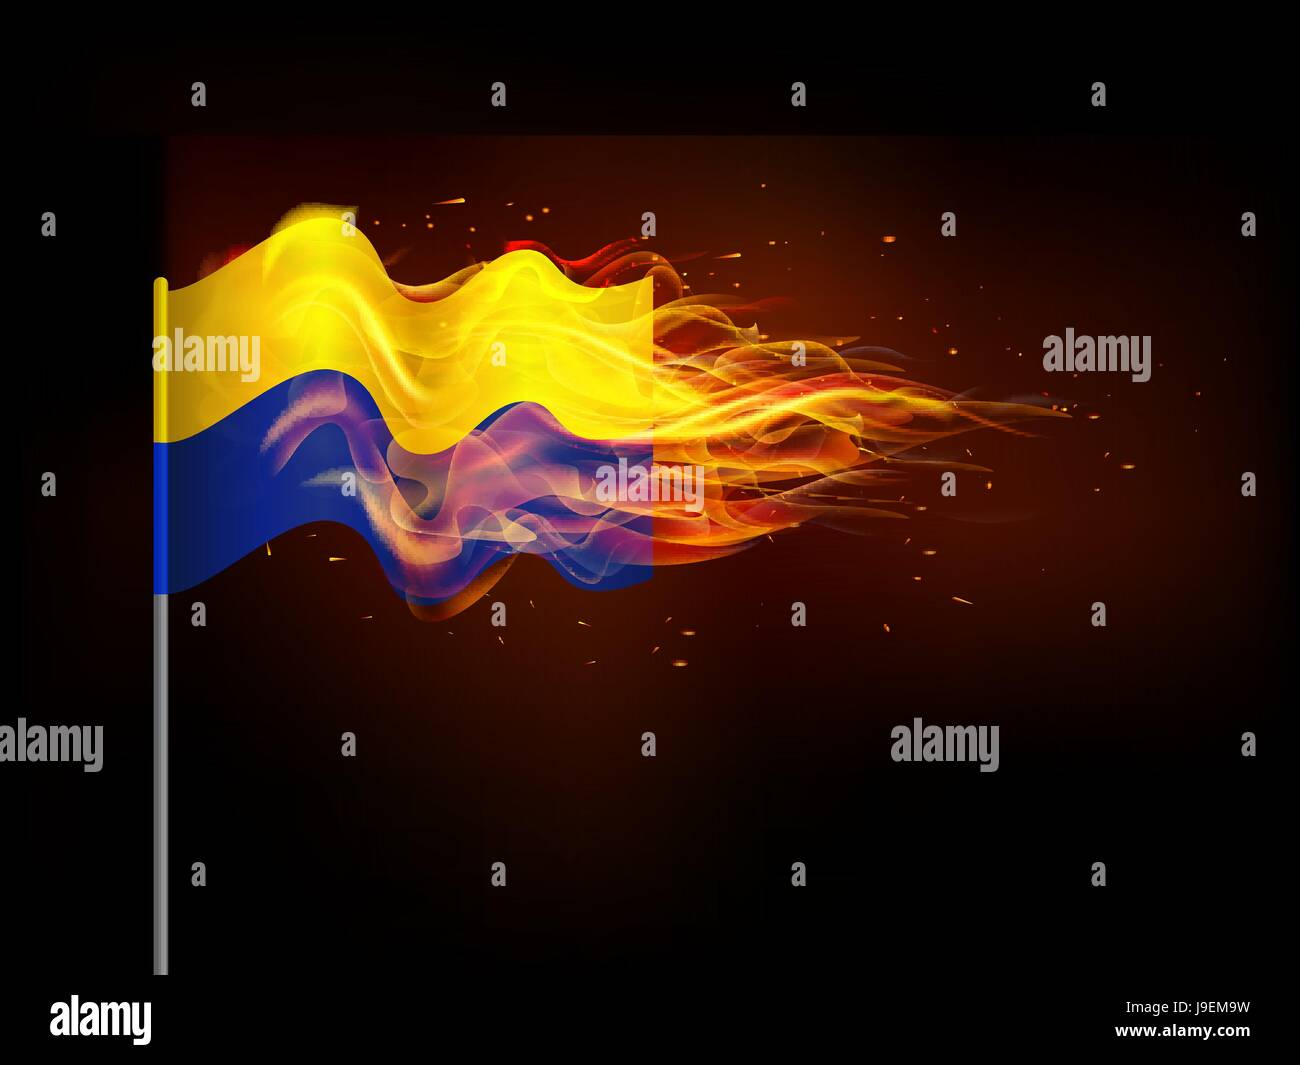 Ukrainian flag in flames. Illustrates the problem of armed conflict in Ukraine. - Stock Image